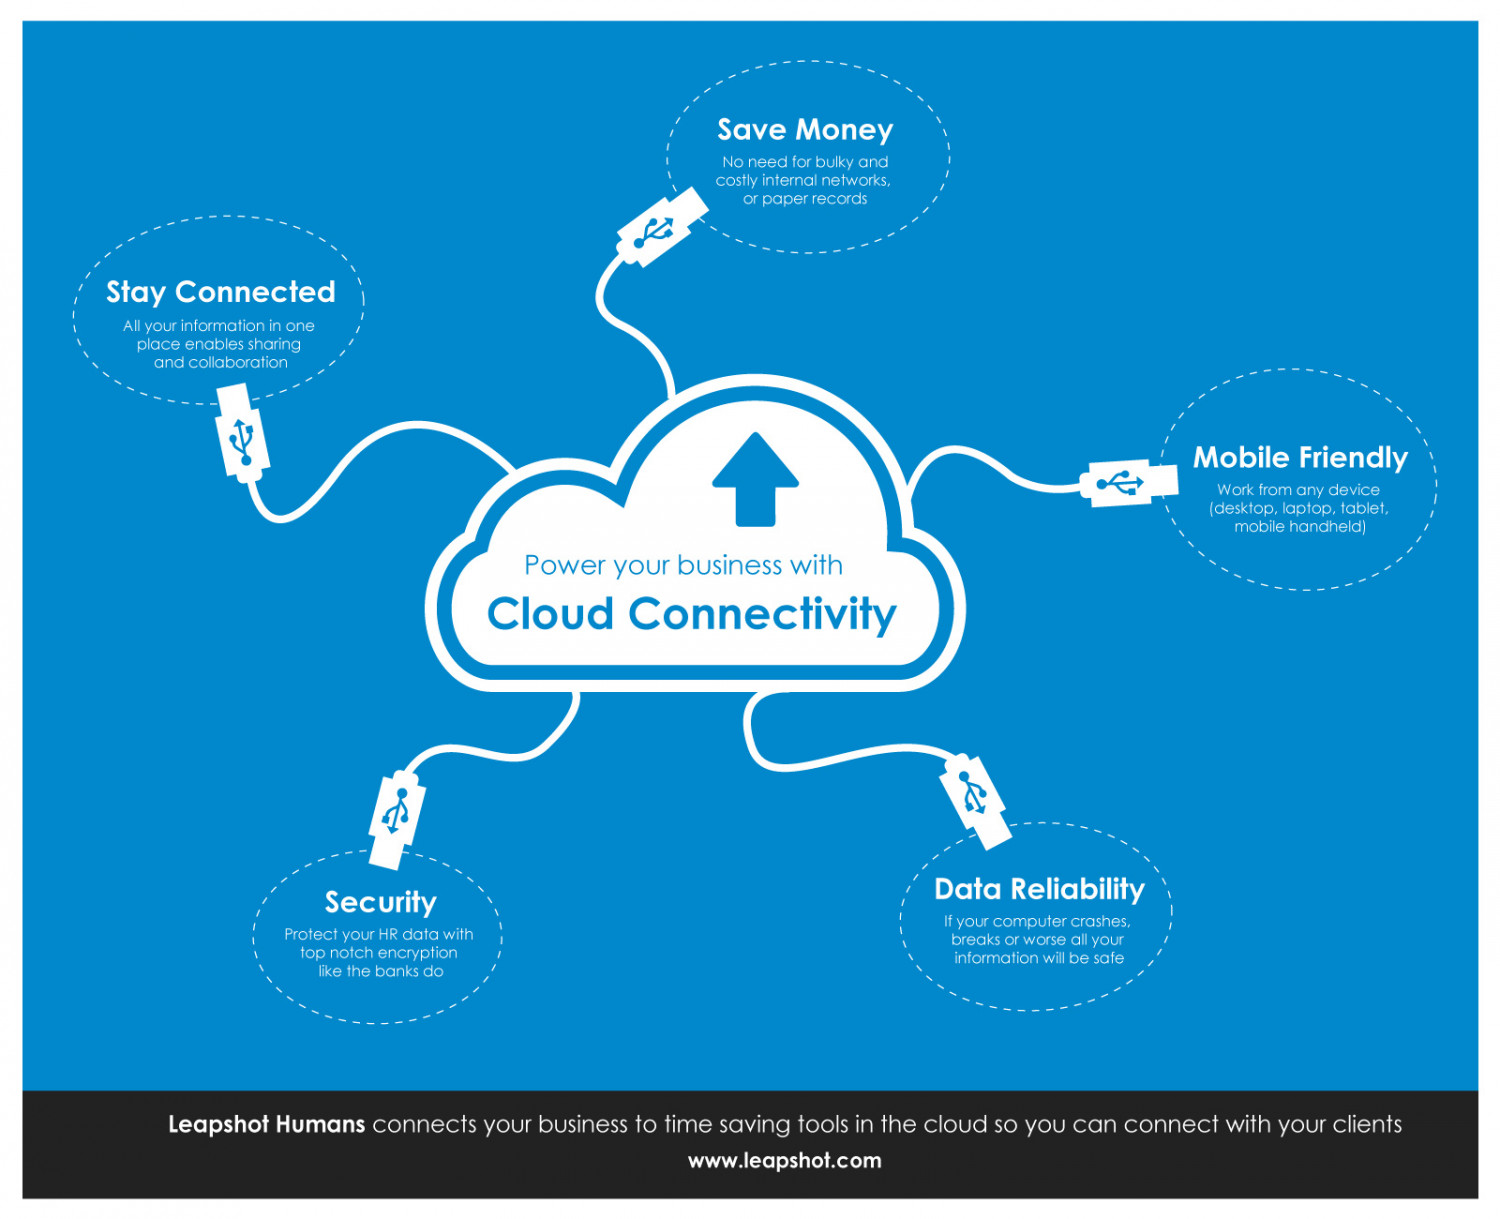 HR in the Cloud Infographic